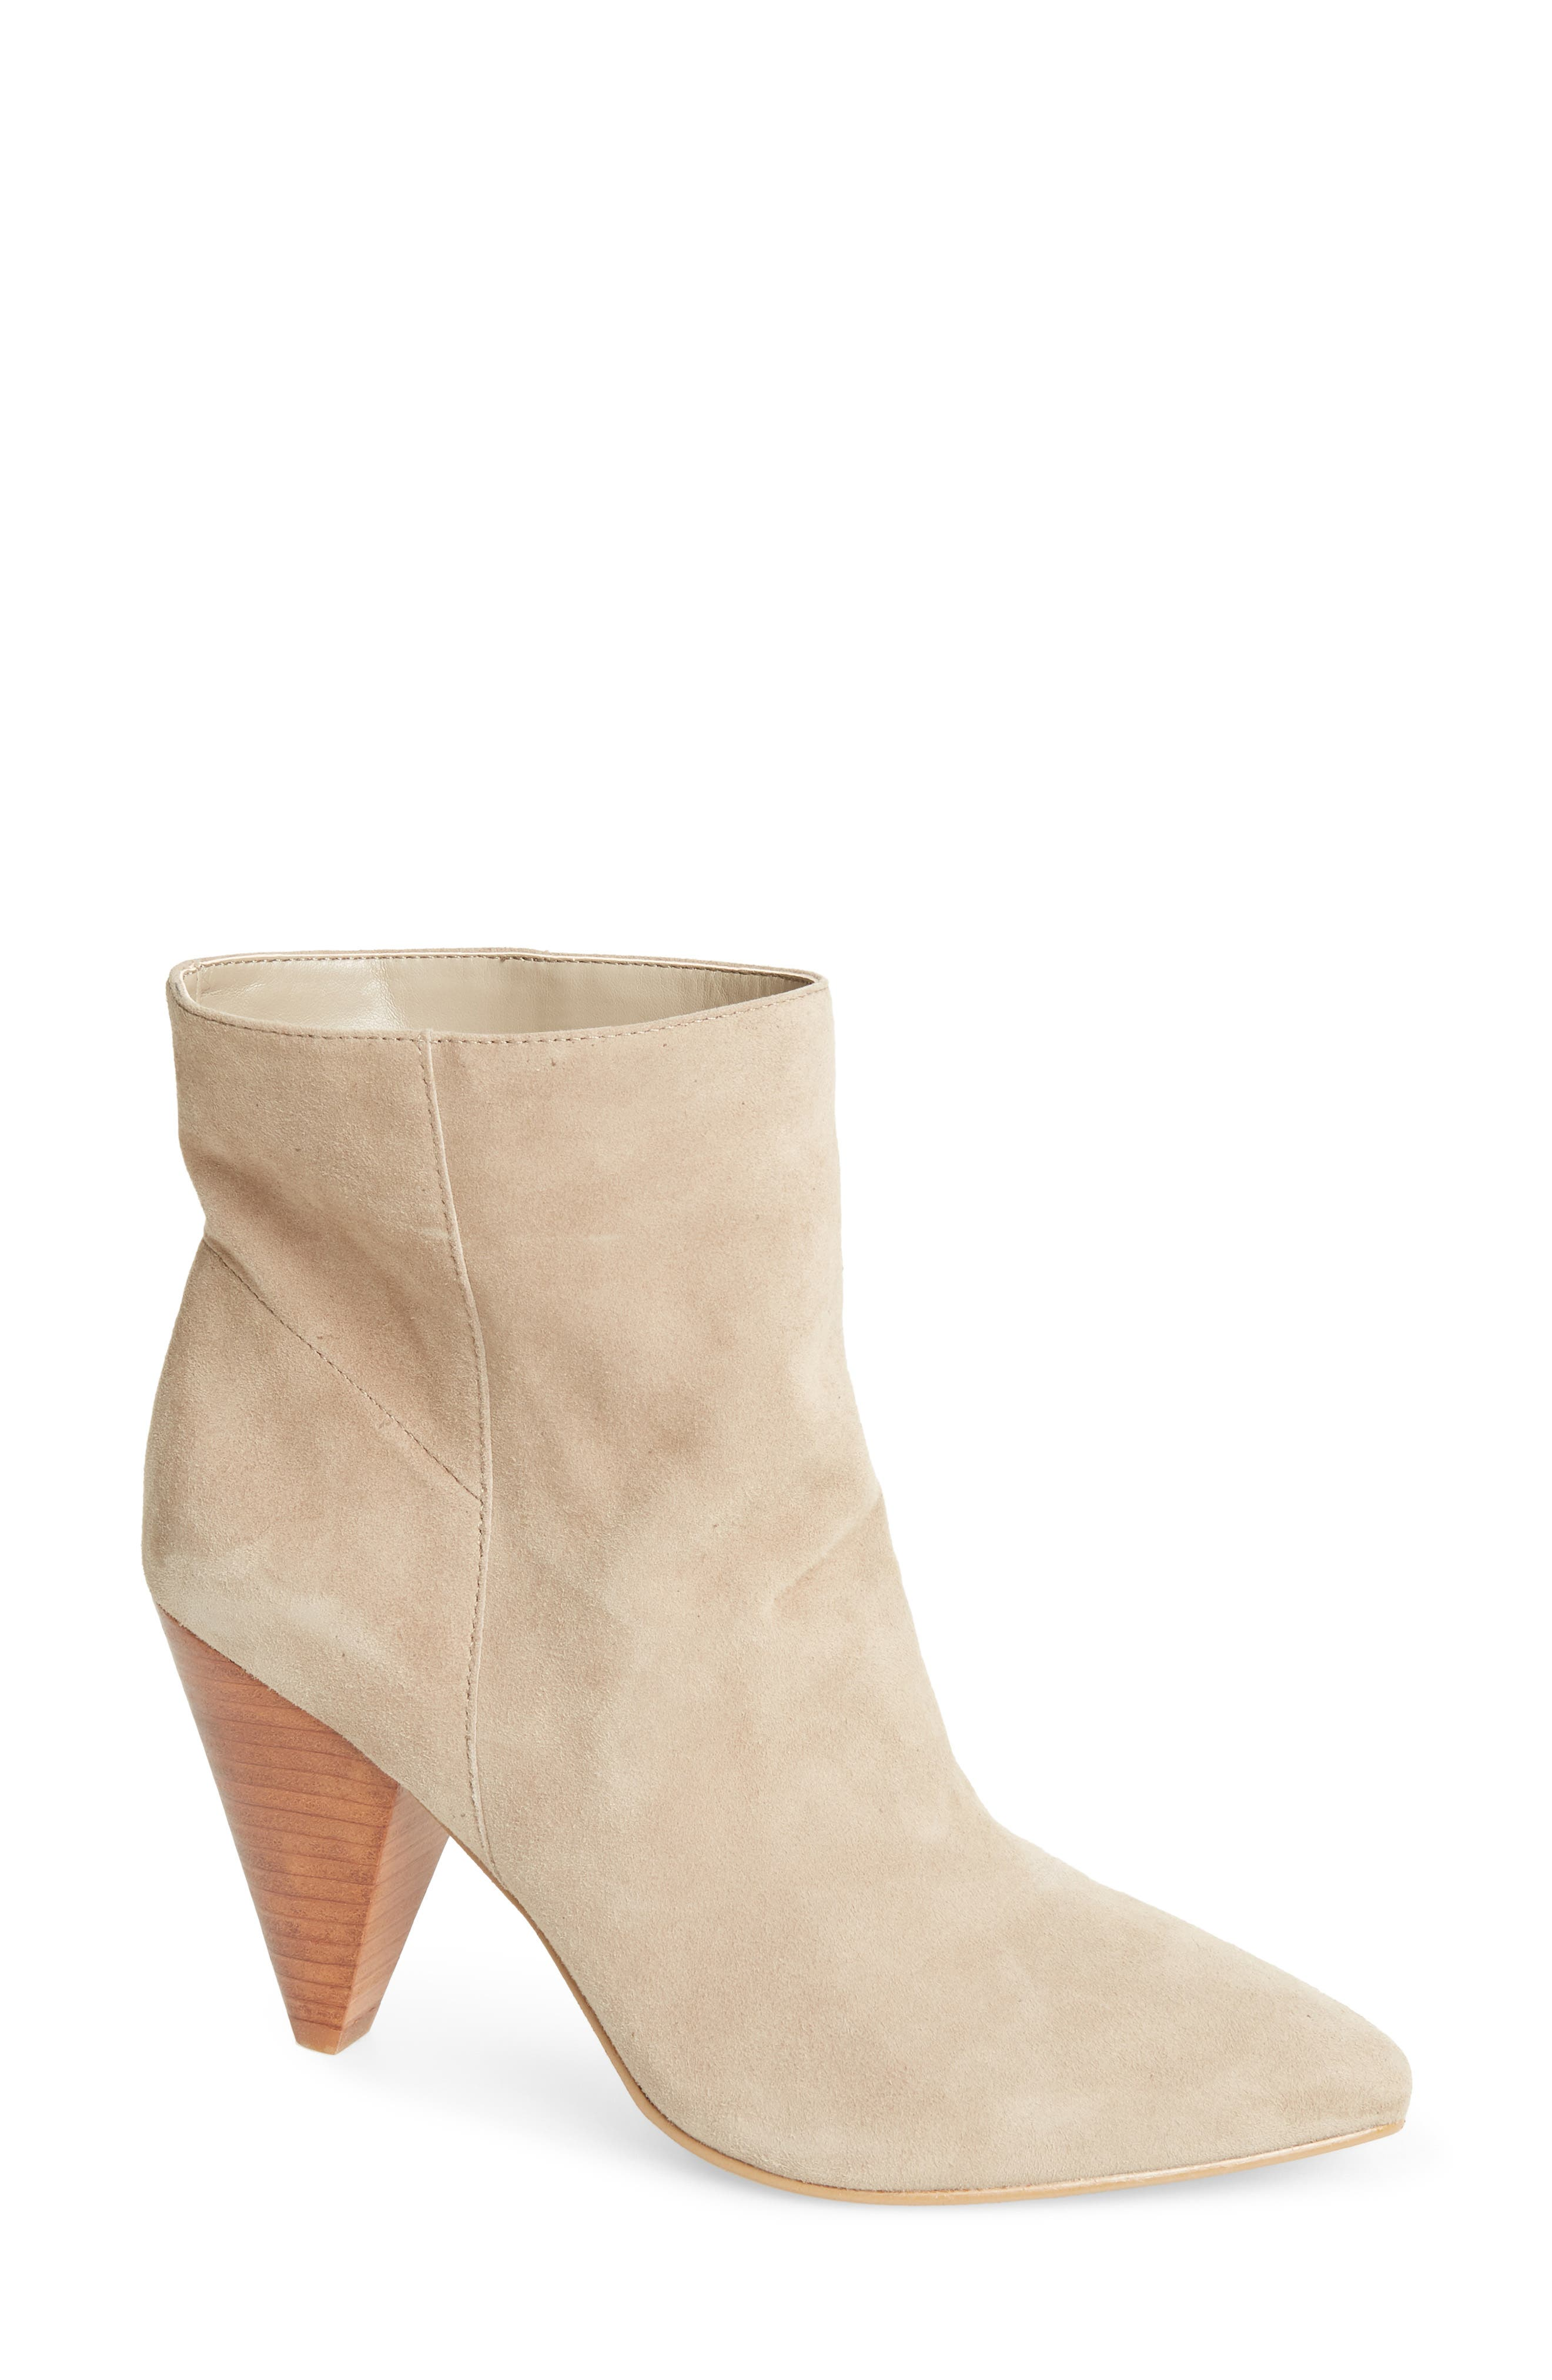 Scope Bootie,                         Main,                         color, TAUPE SUEDE